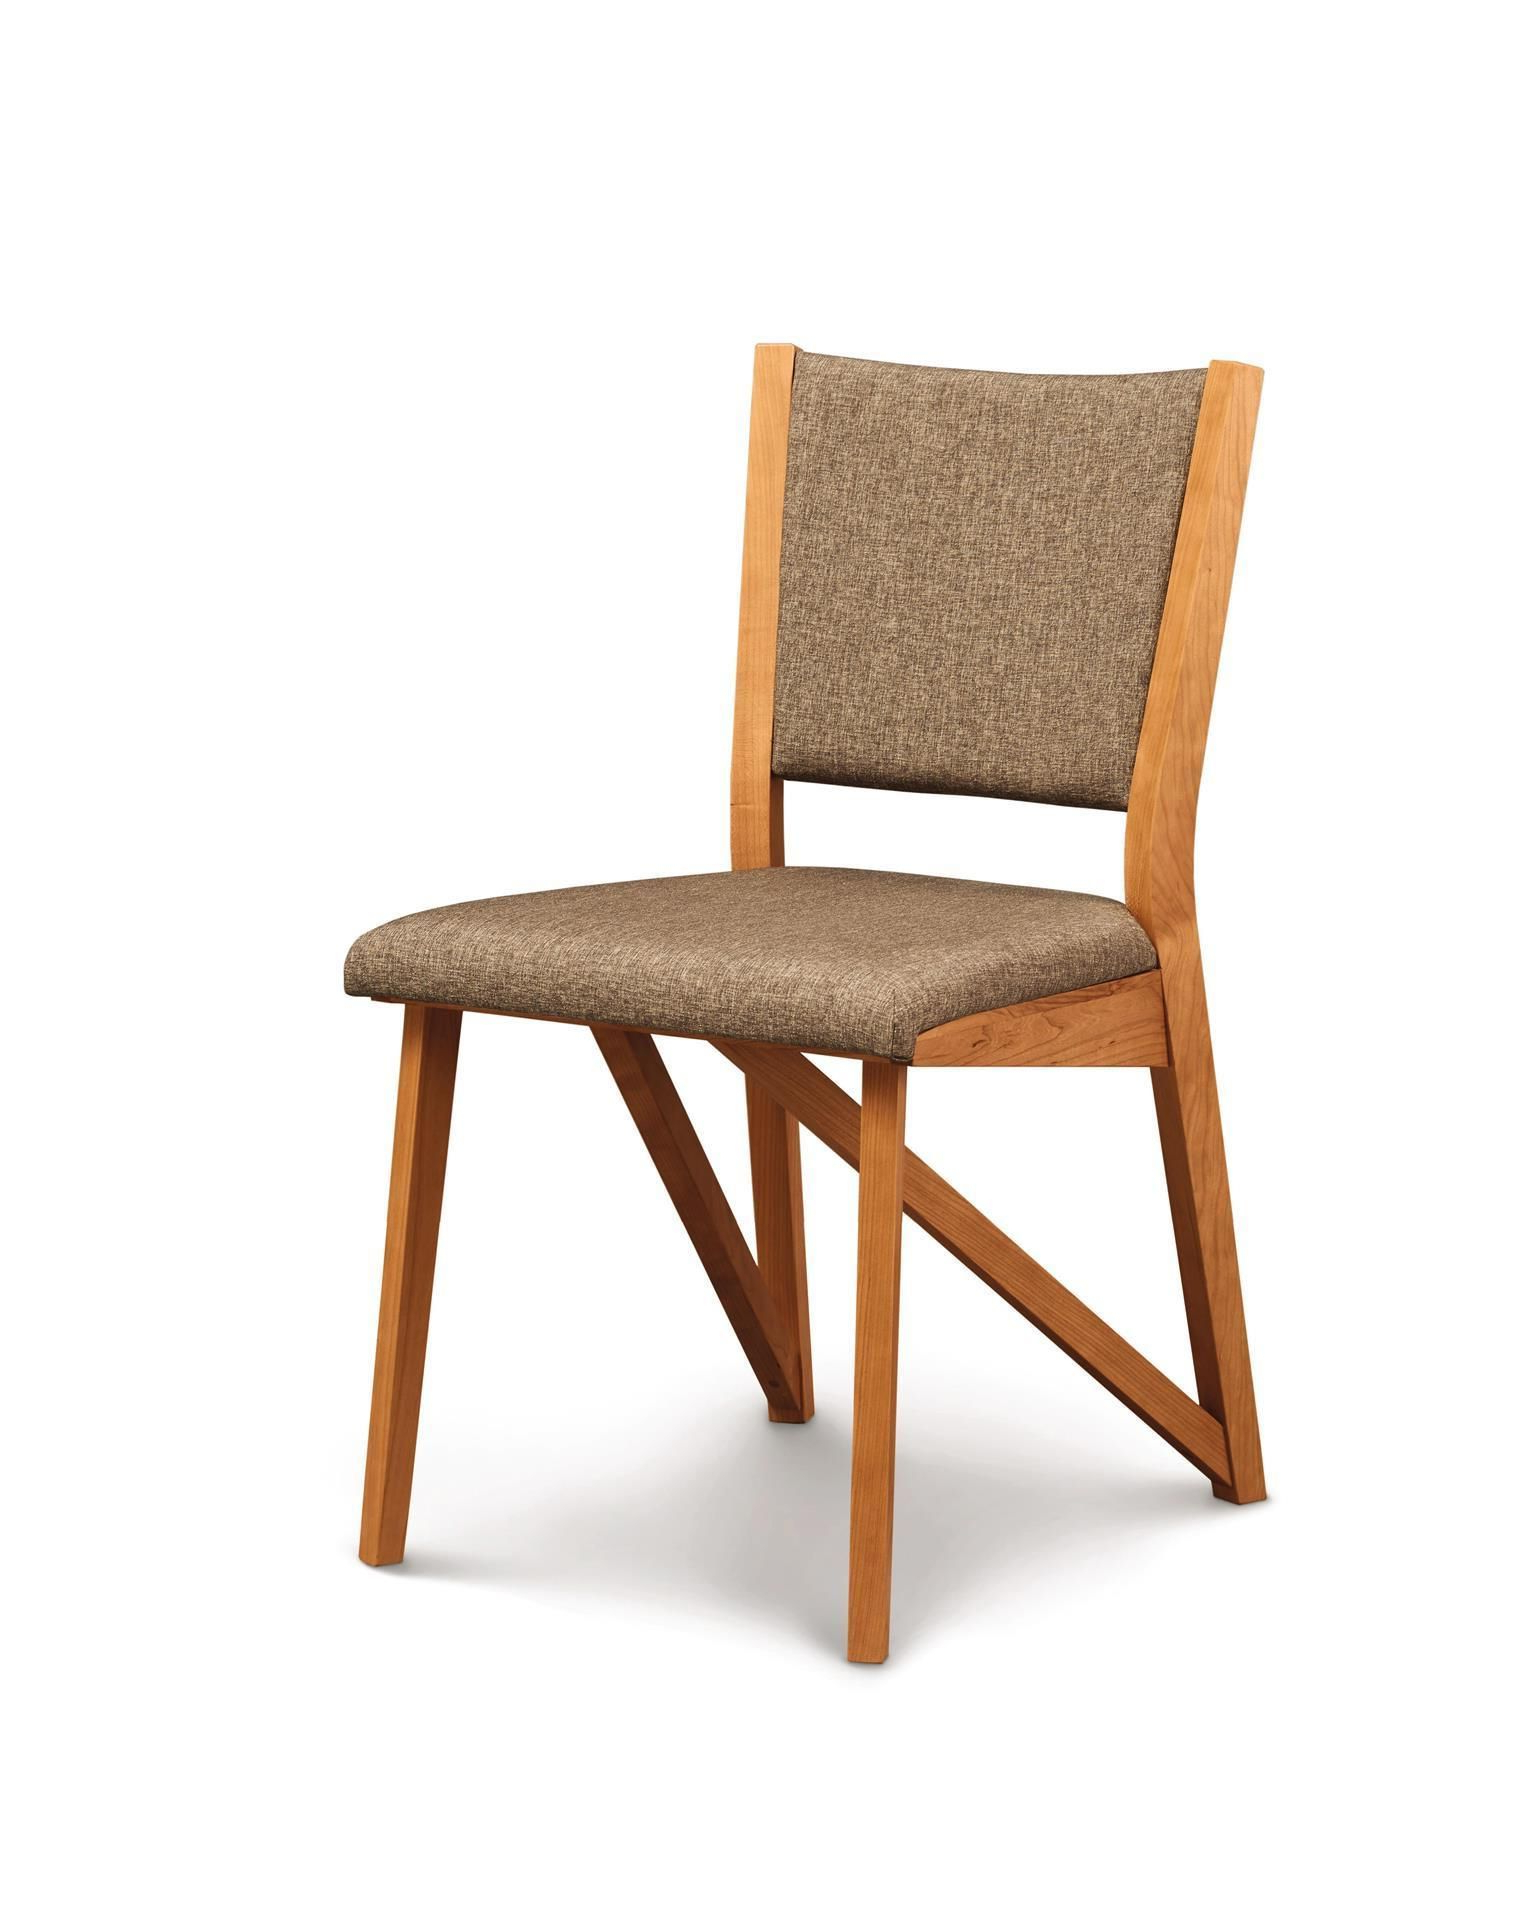 Current Exeter Upholstered Wood Chair – Copeland Furniture In 2020 Within Exeter Side Chairs (View 7 of 20)